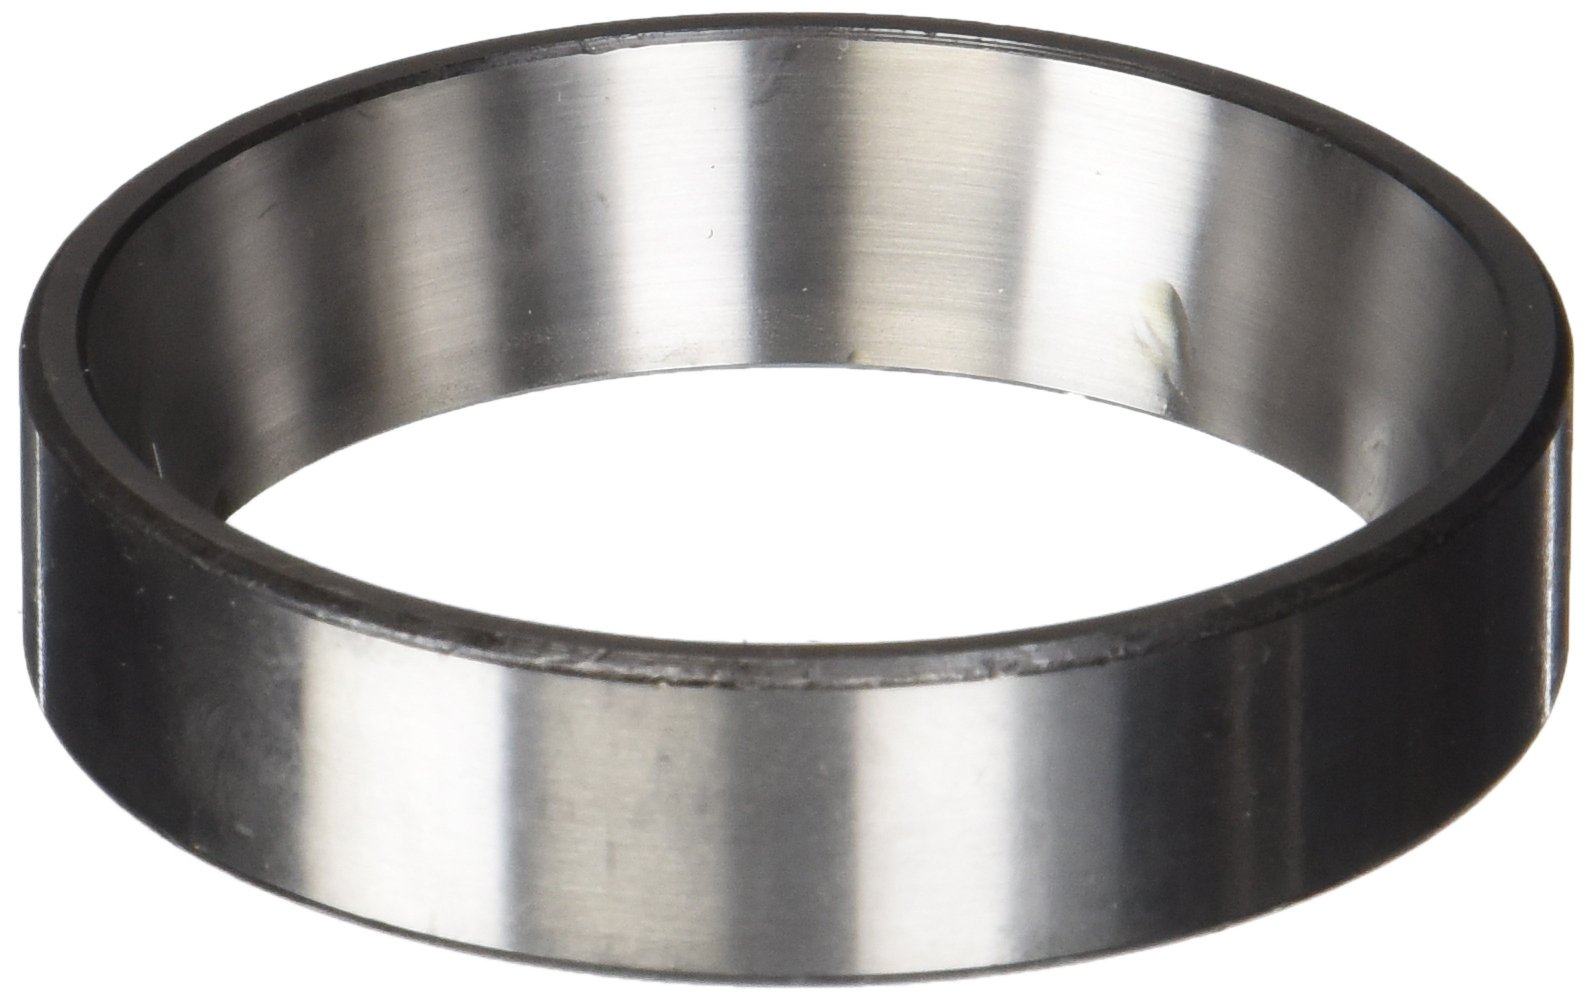 Timken 25520 Tapered Roller Bearing Outer Race Cup, Steel, Inch, 3.265'' Outer Diameter, 0.7500'' Cup Width